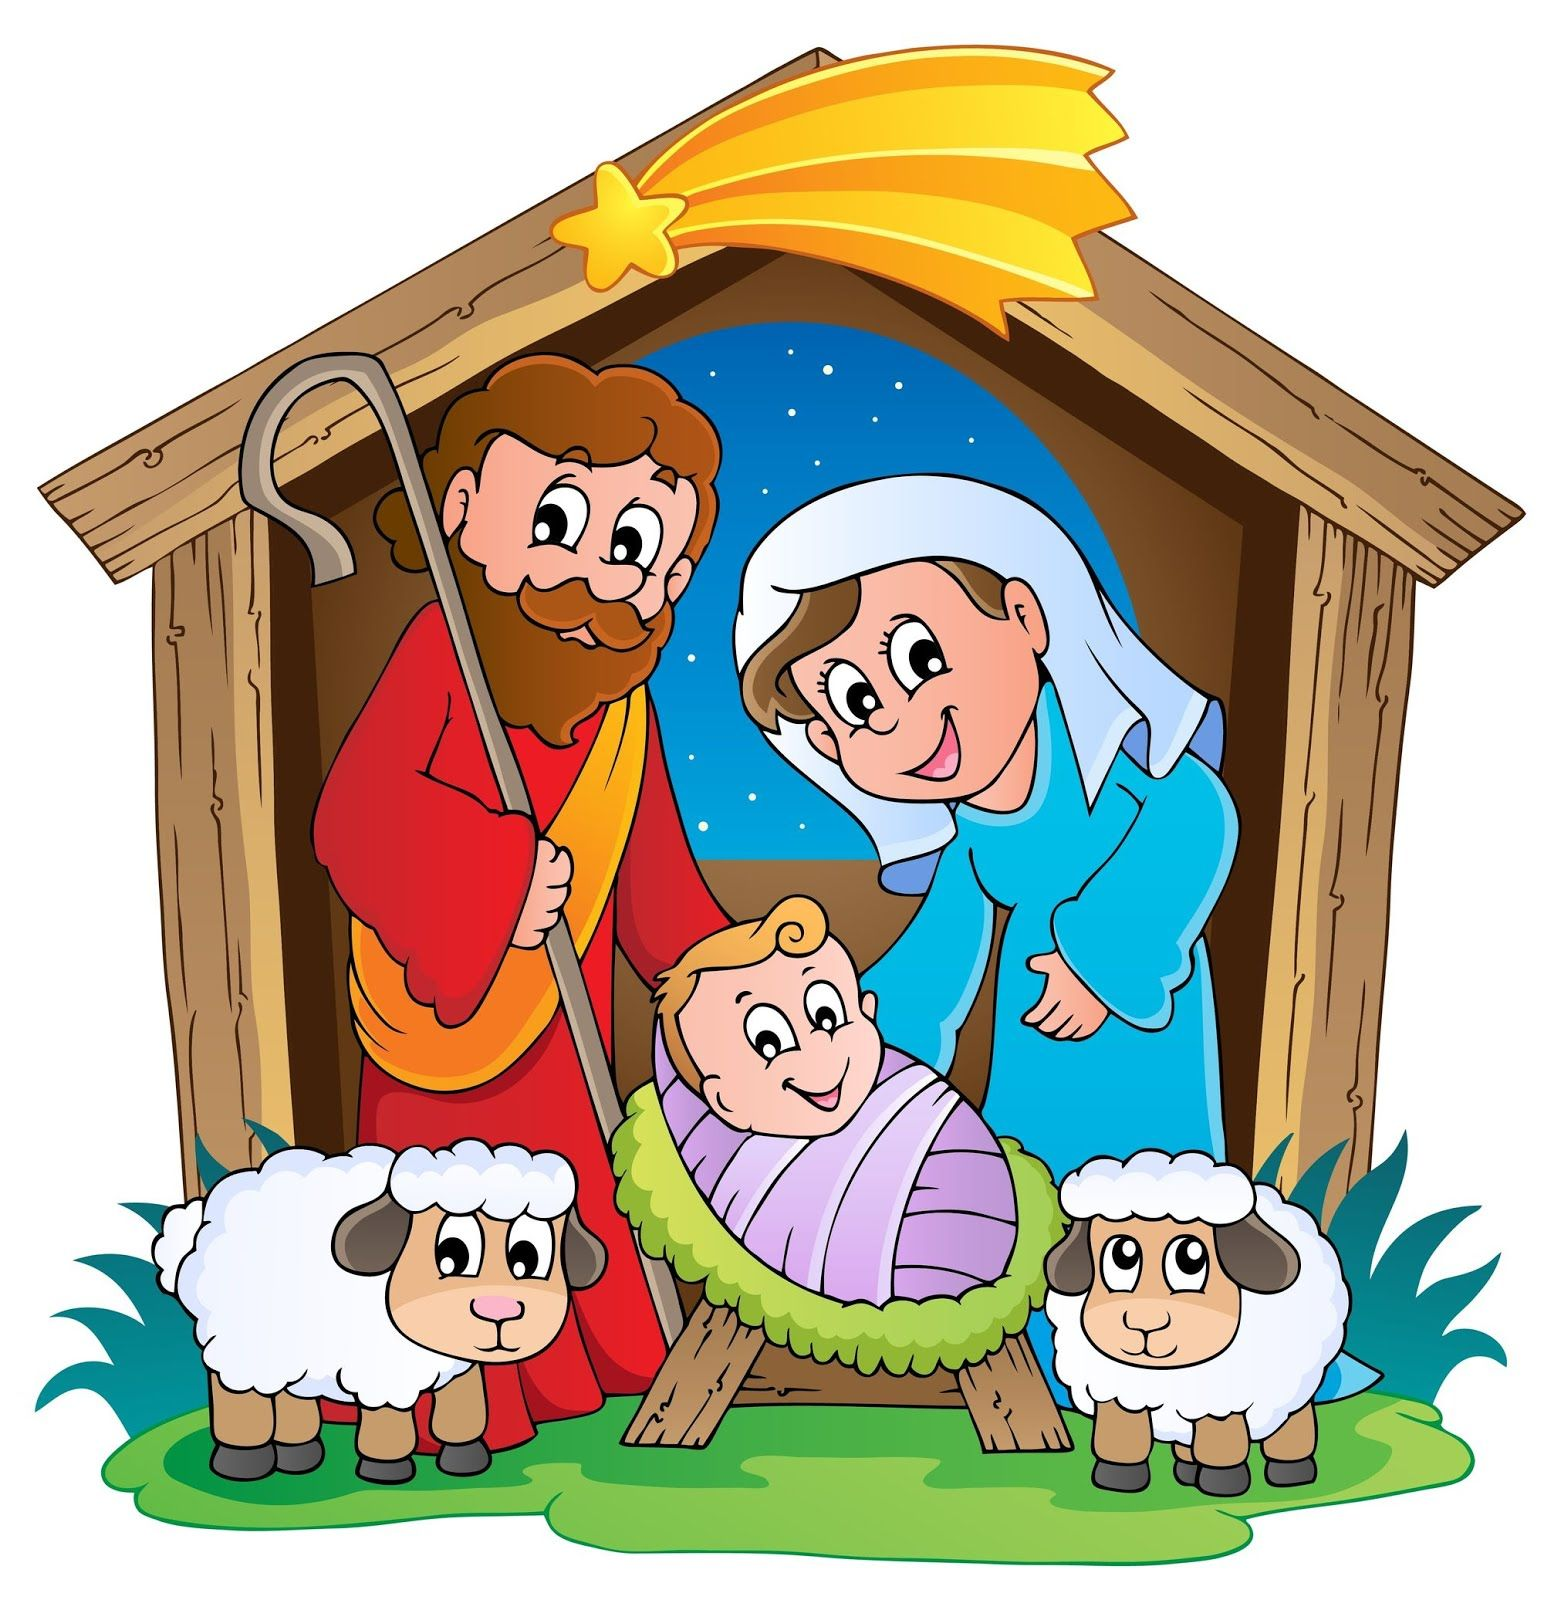 Pin By Adelina Velasco On Birma Christmas Nativity Scene Christmas Nativity Nativity Scene Pictures